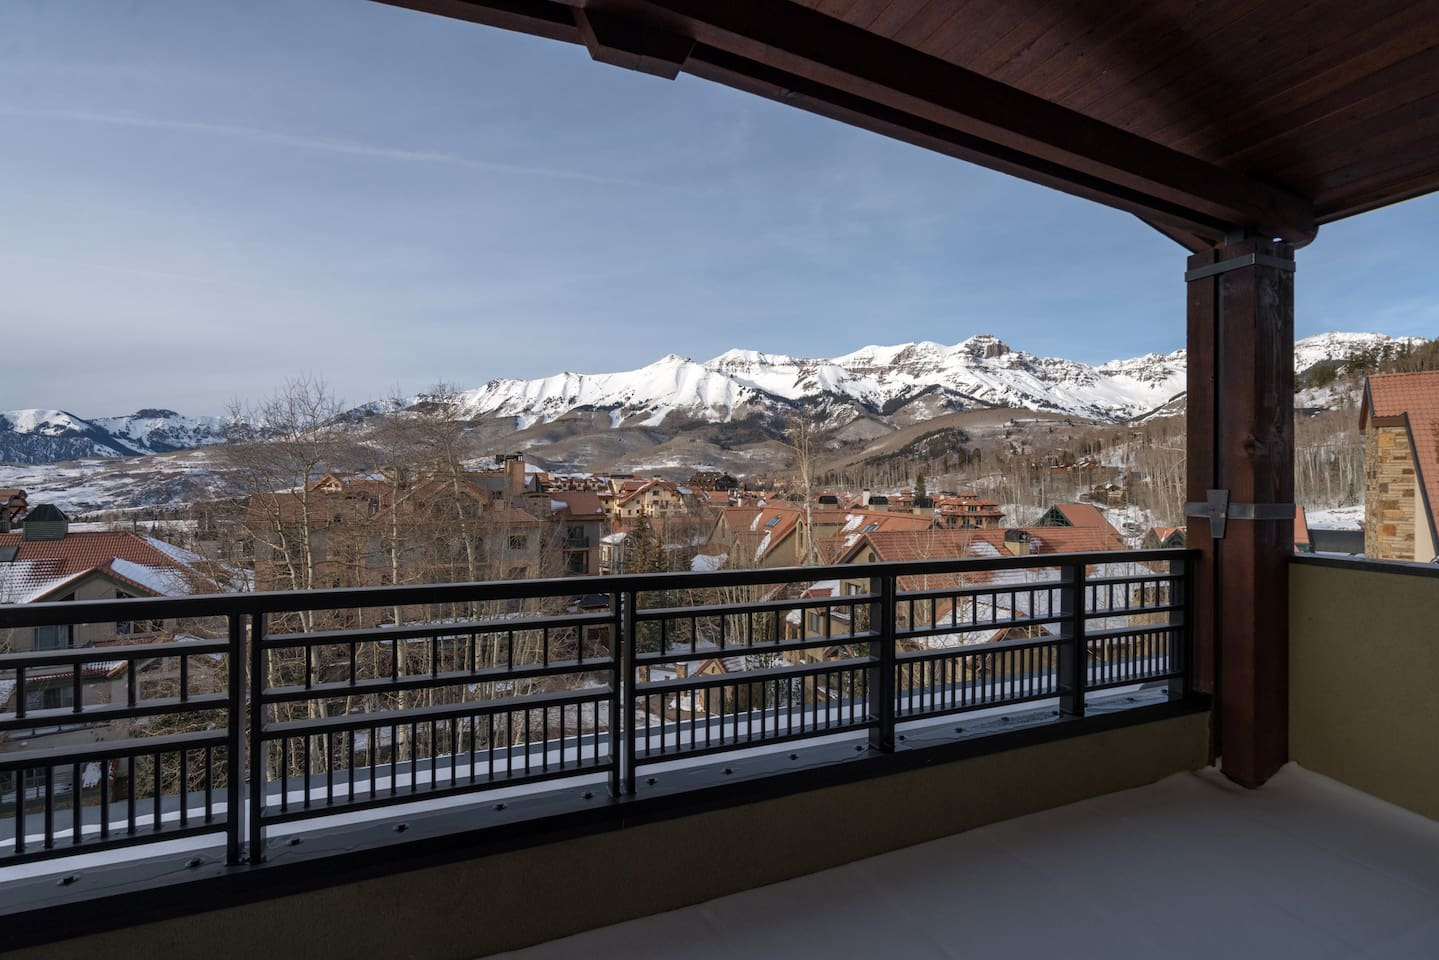 Step out onto your balcony and breathe the fresh mountain air!